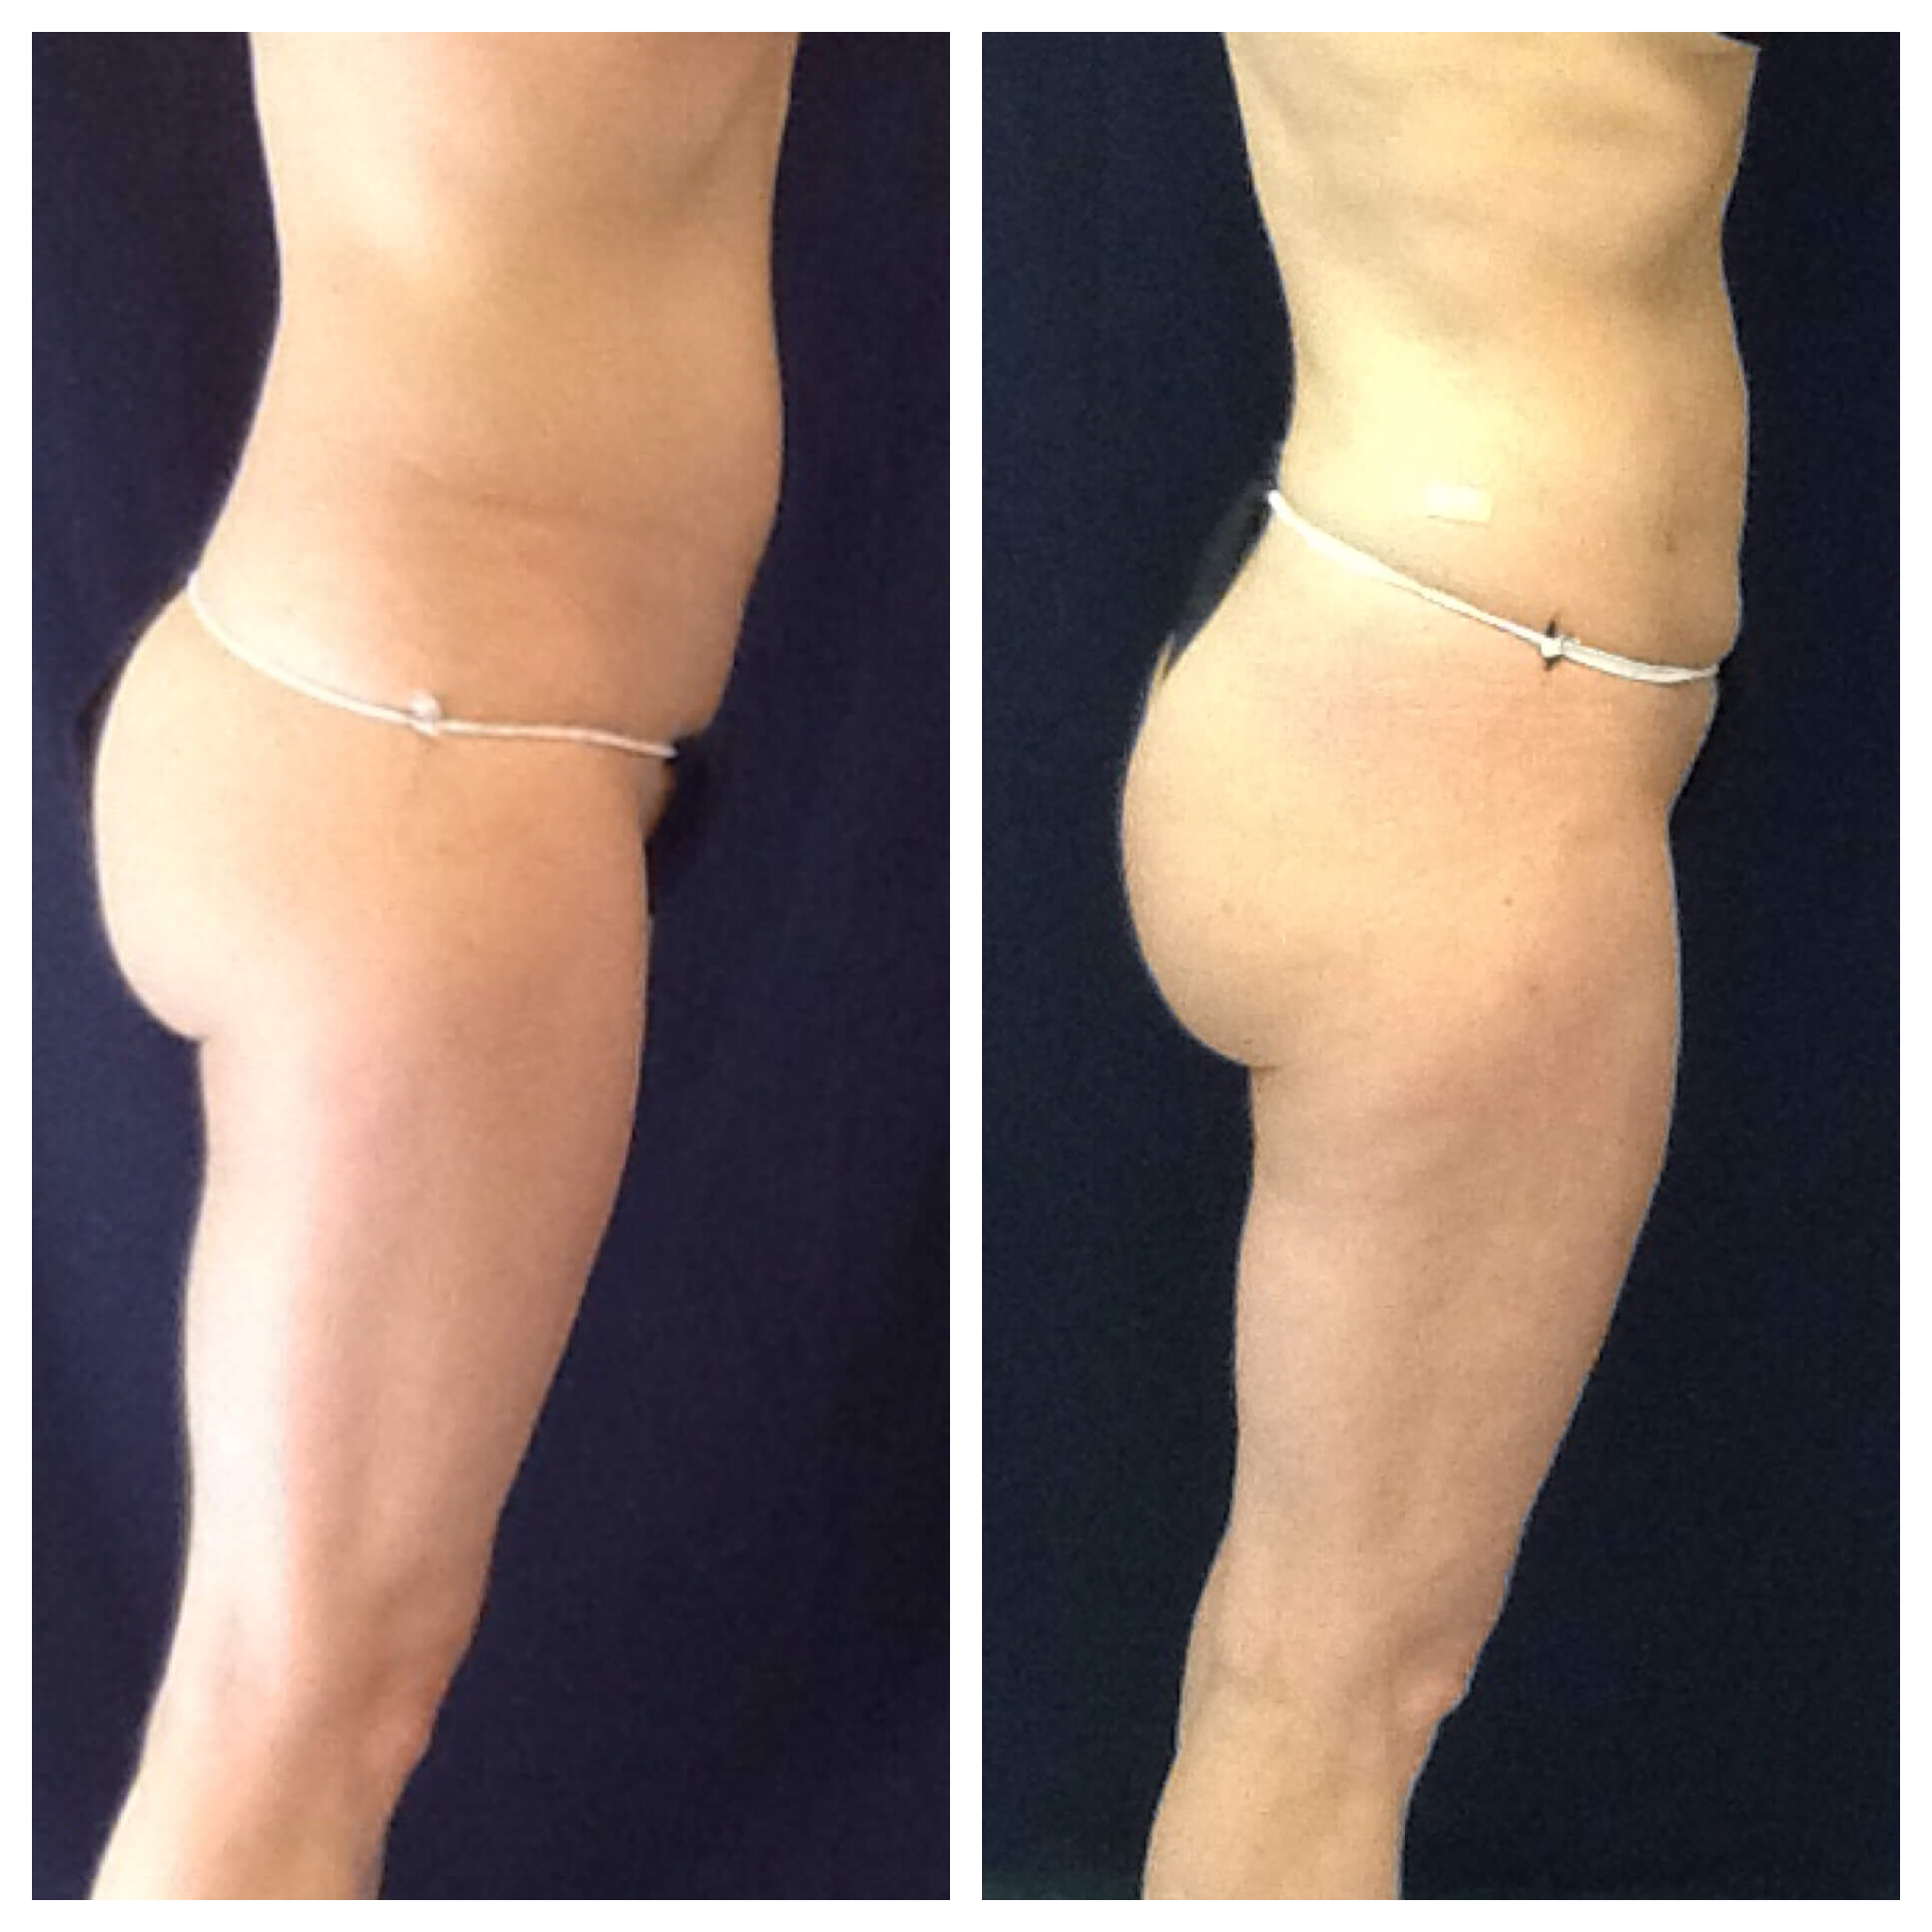 8 Weeks Before and After Liposuction of the abdomen, flanks, lower back,  inner thigh. Fat transfer gluteal 350 cc's per side. ThermiTight lower thighs and inner thighs